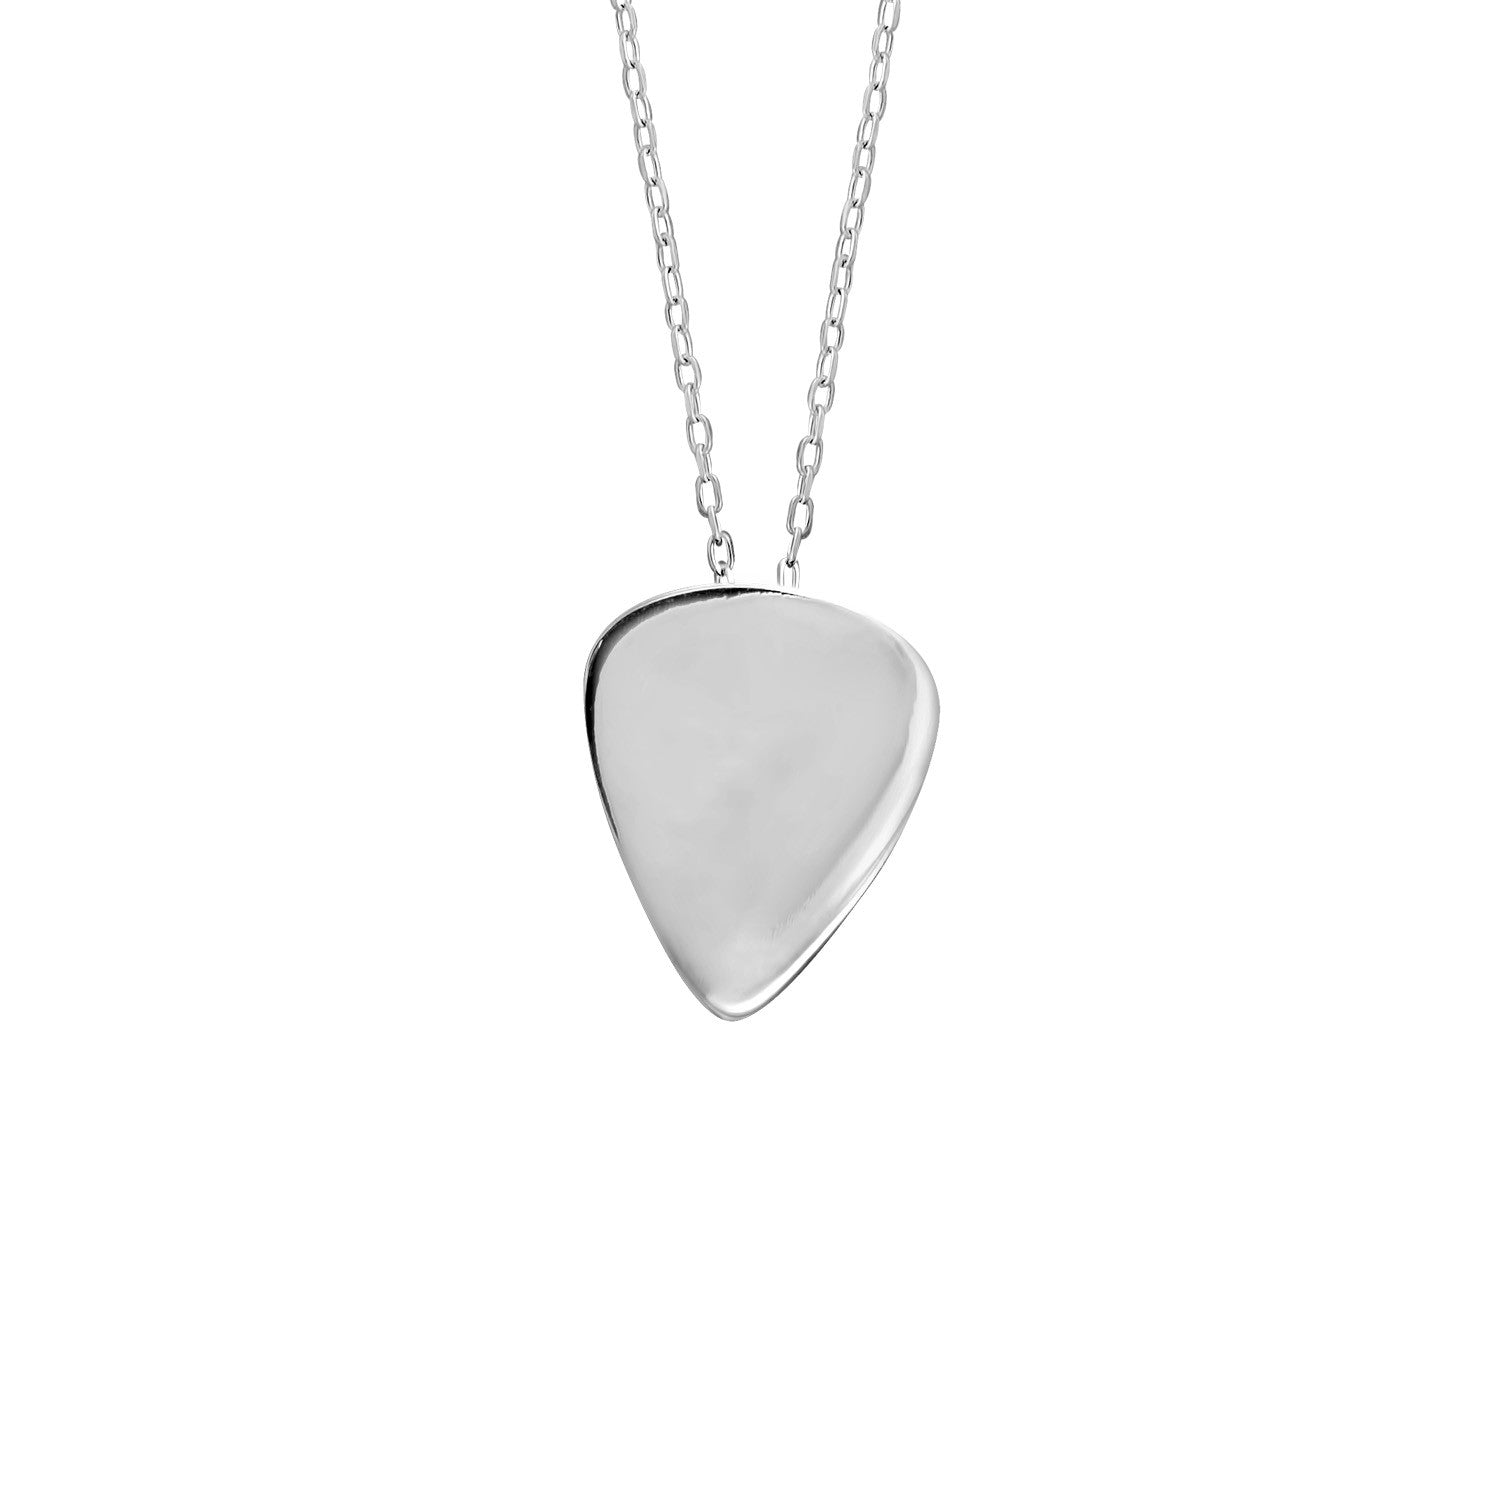 Plectrum Pendant in Sterling Silver